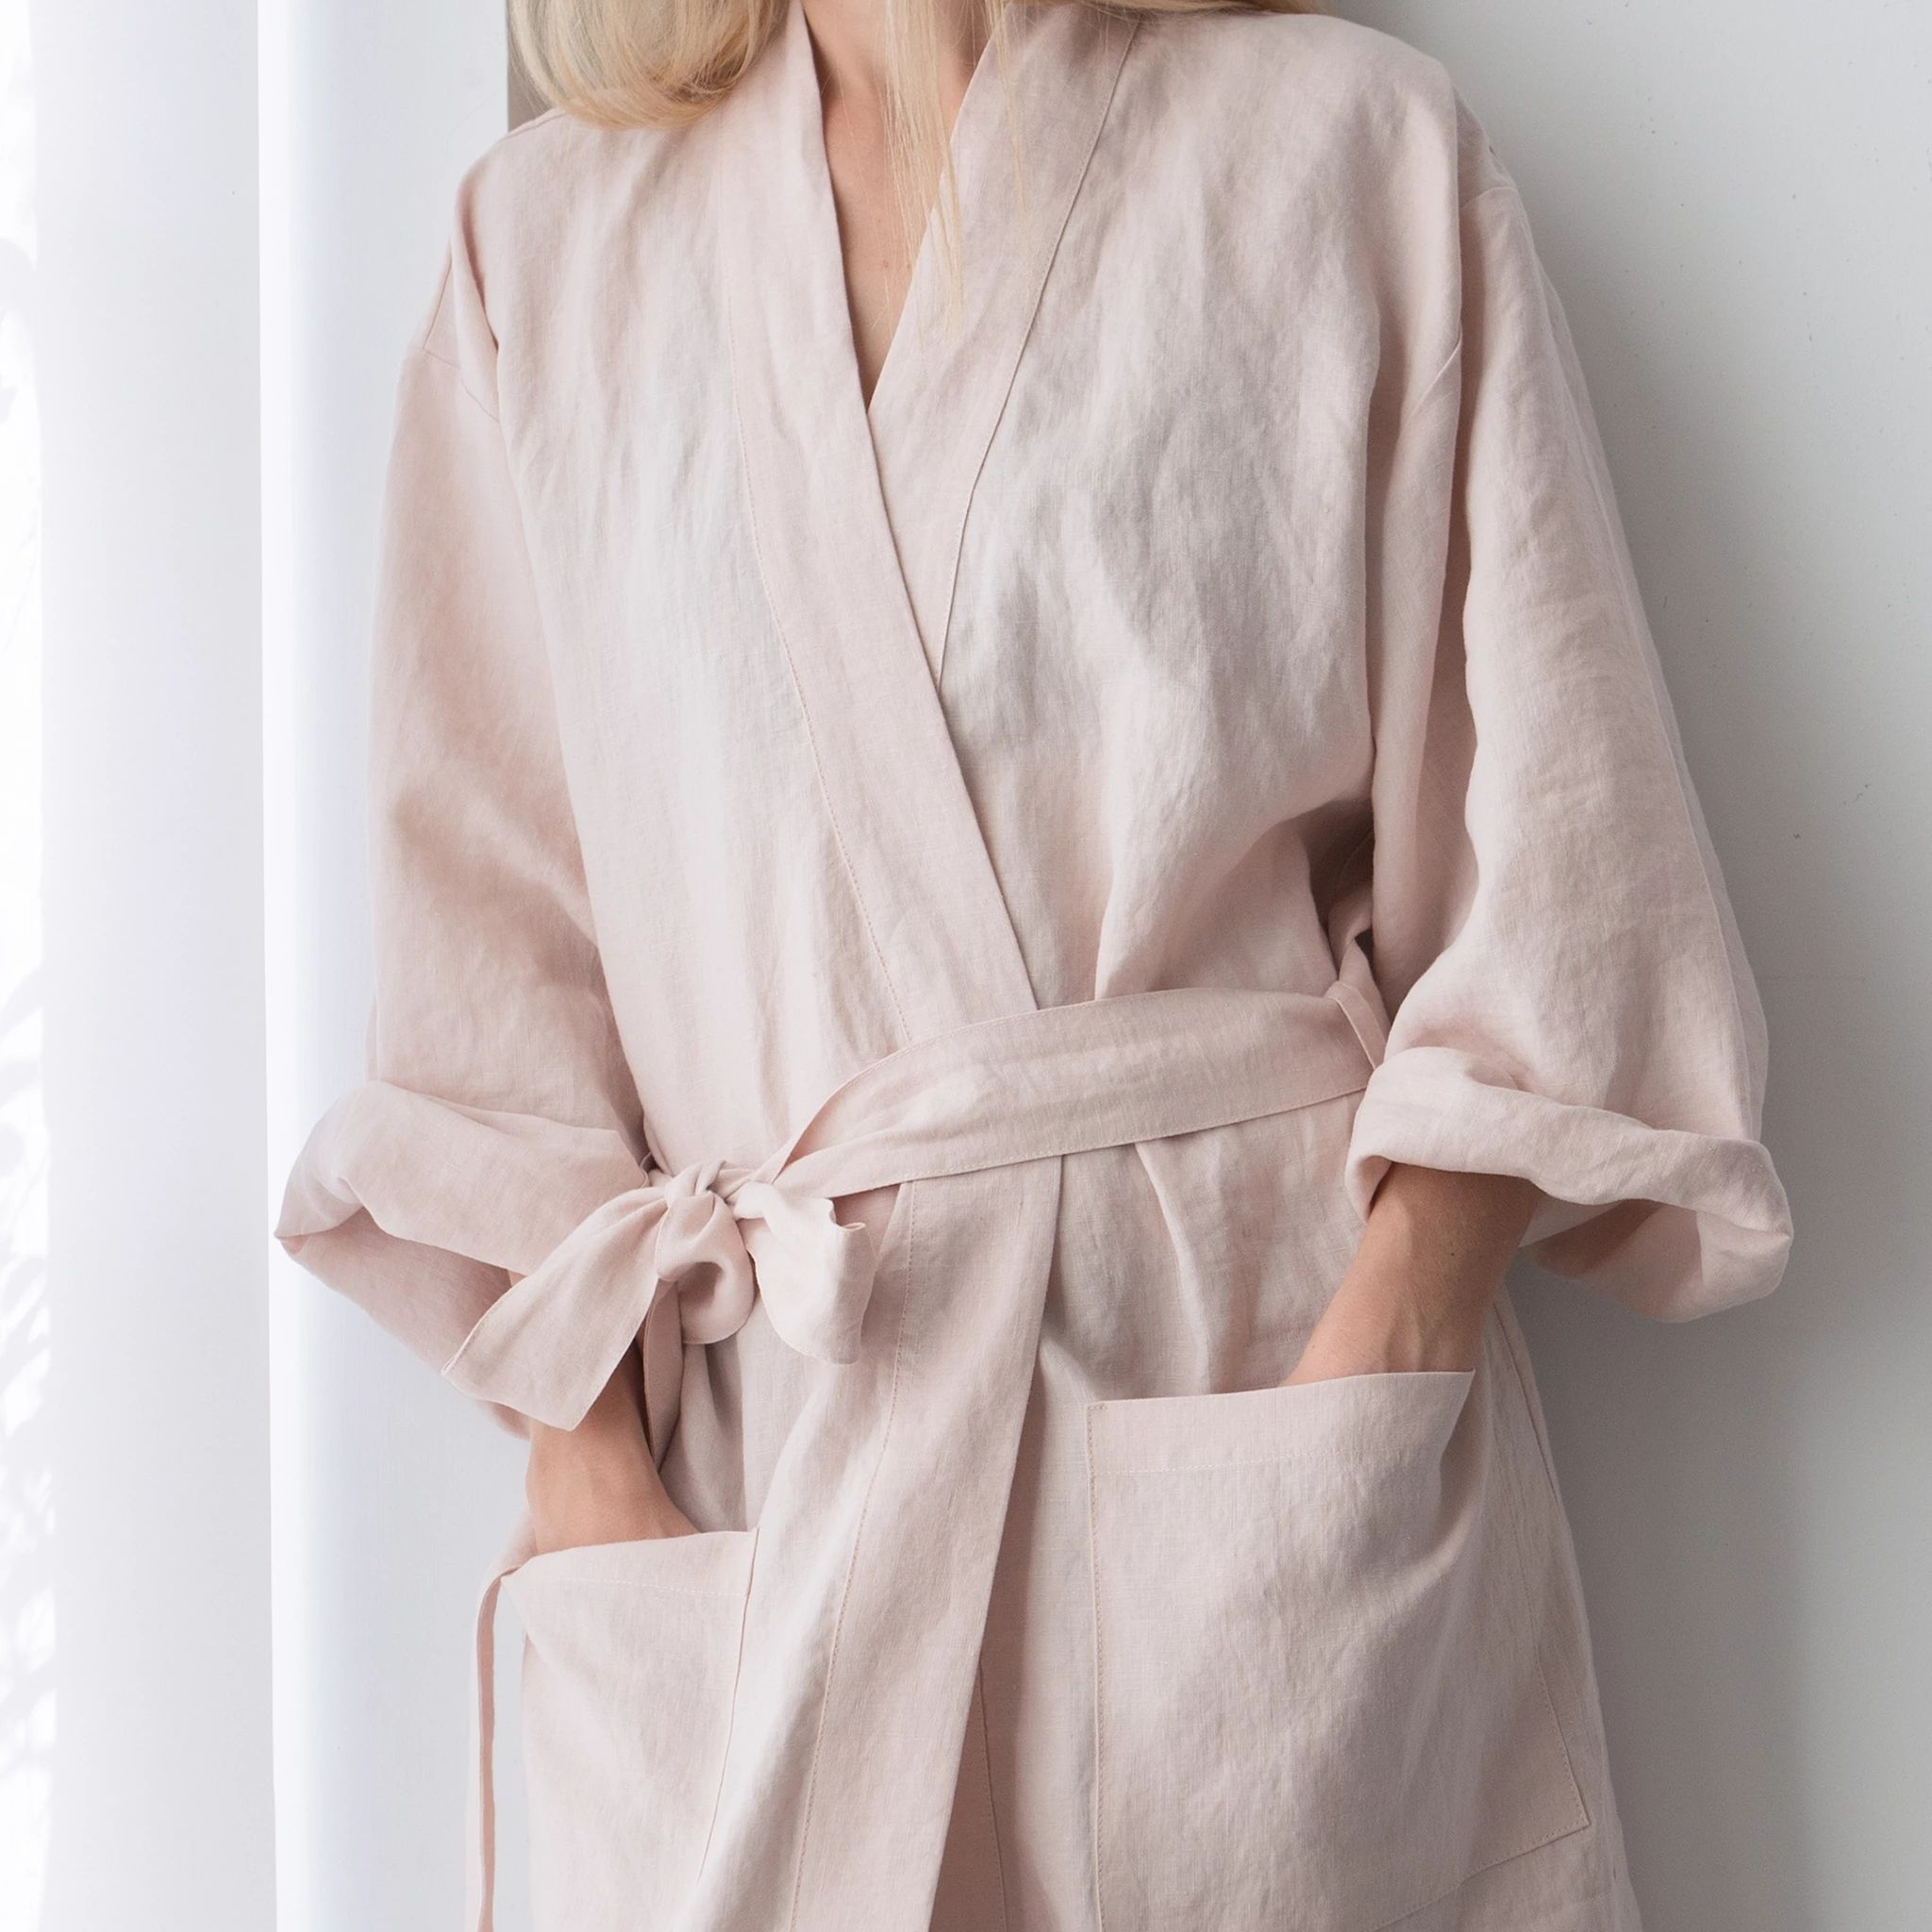 Washed soft linen kimono robes one size